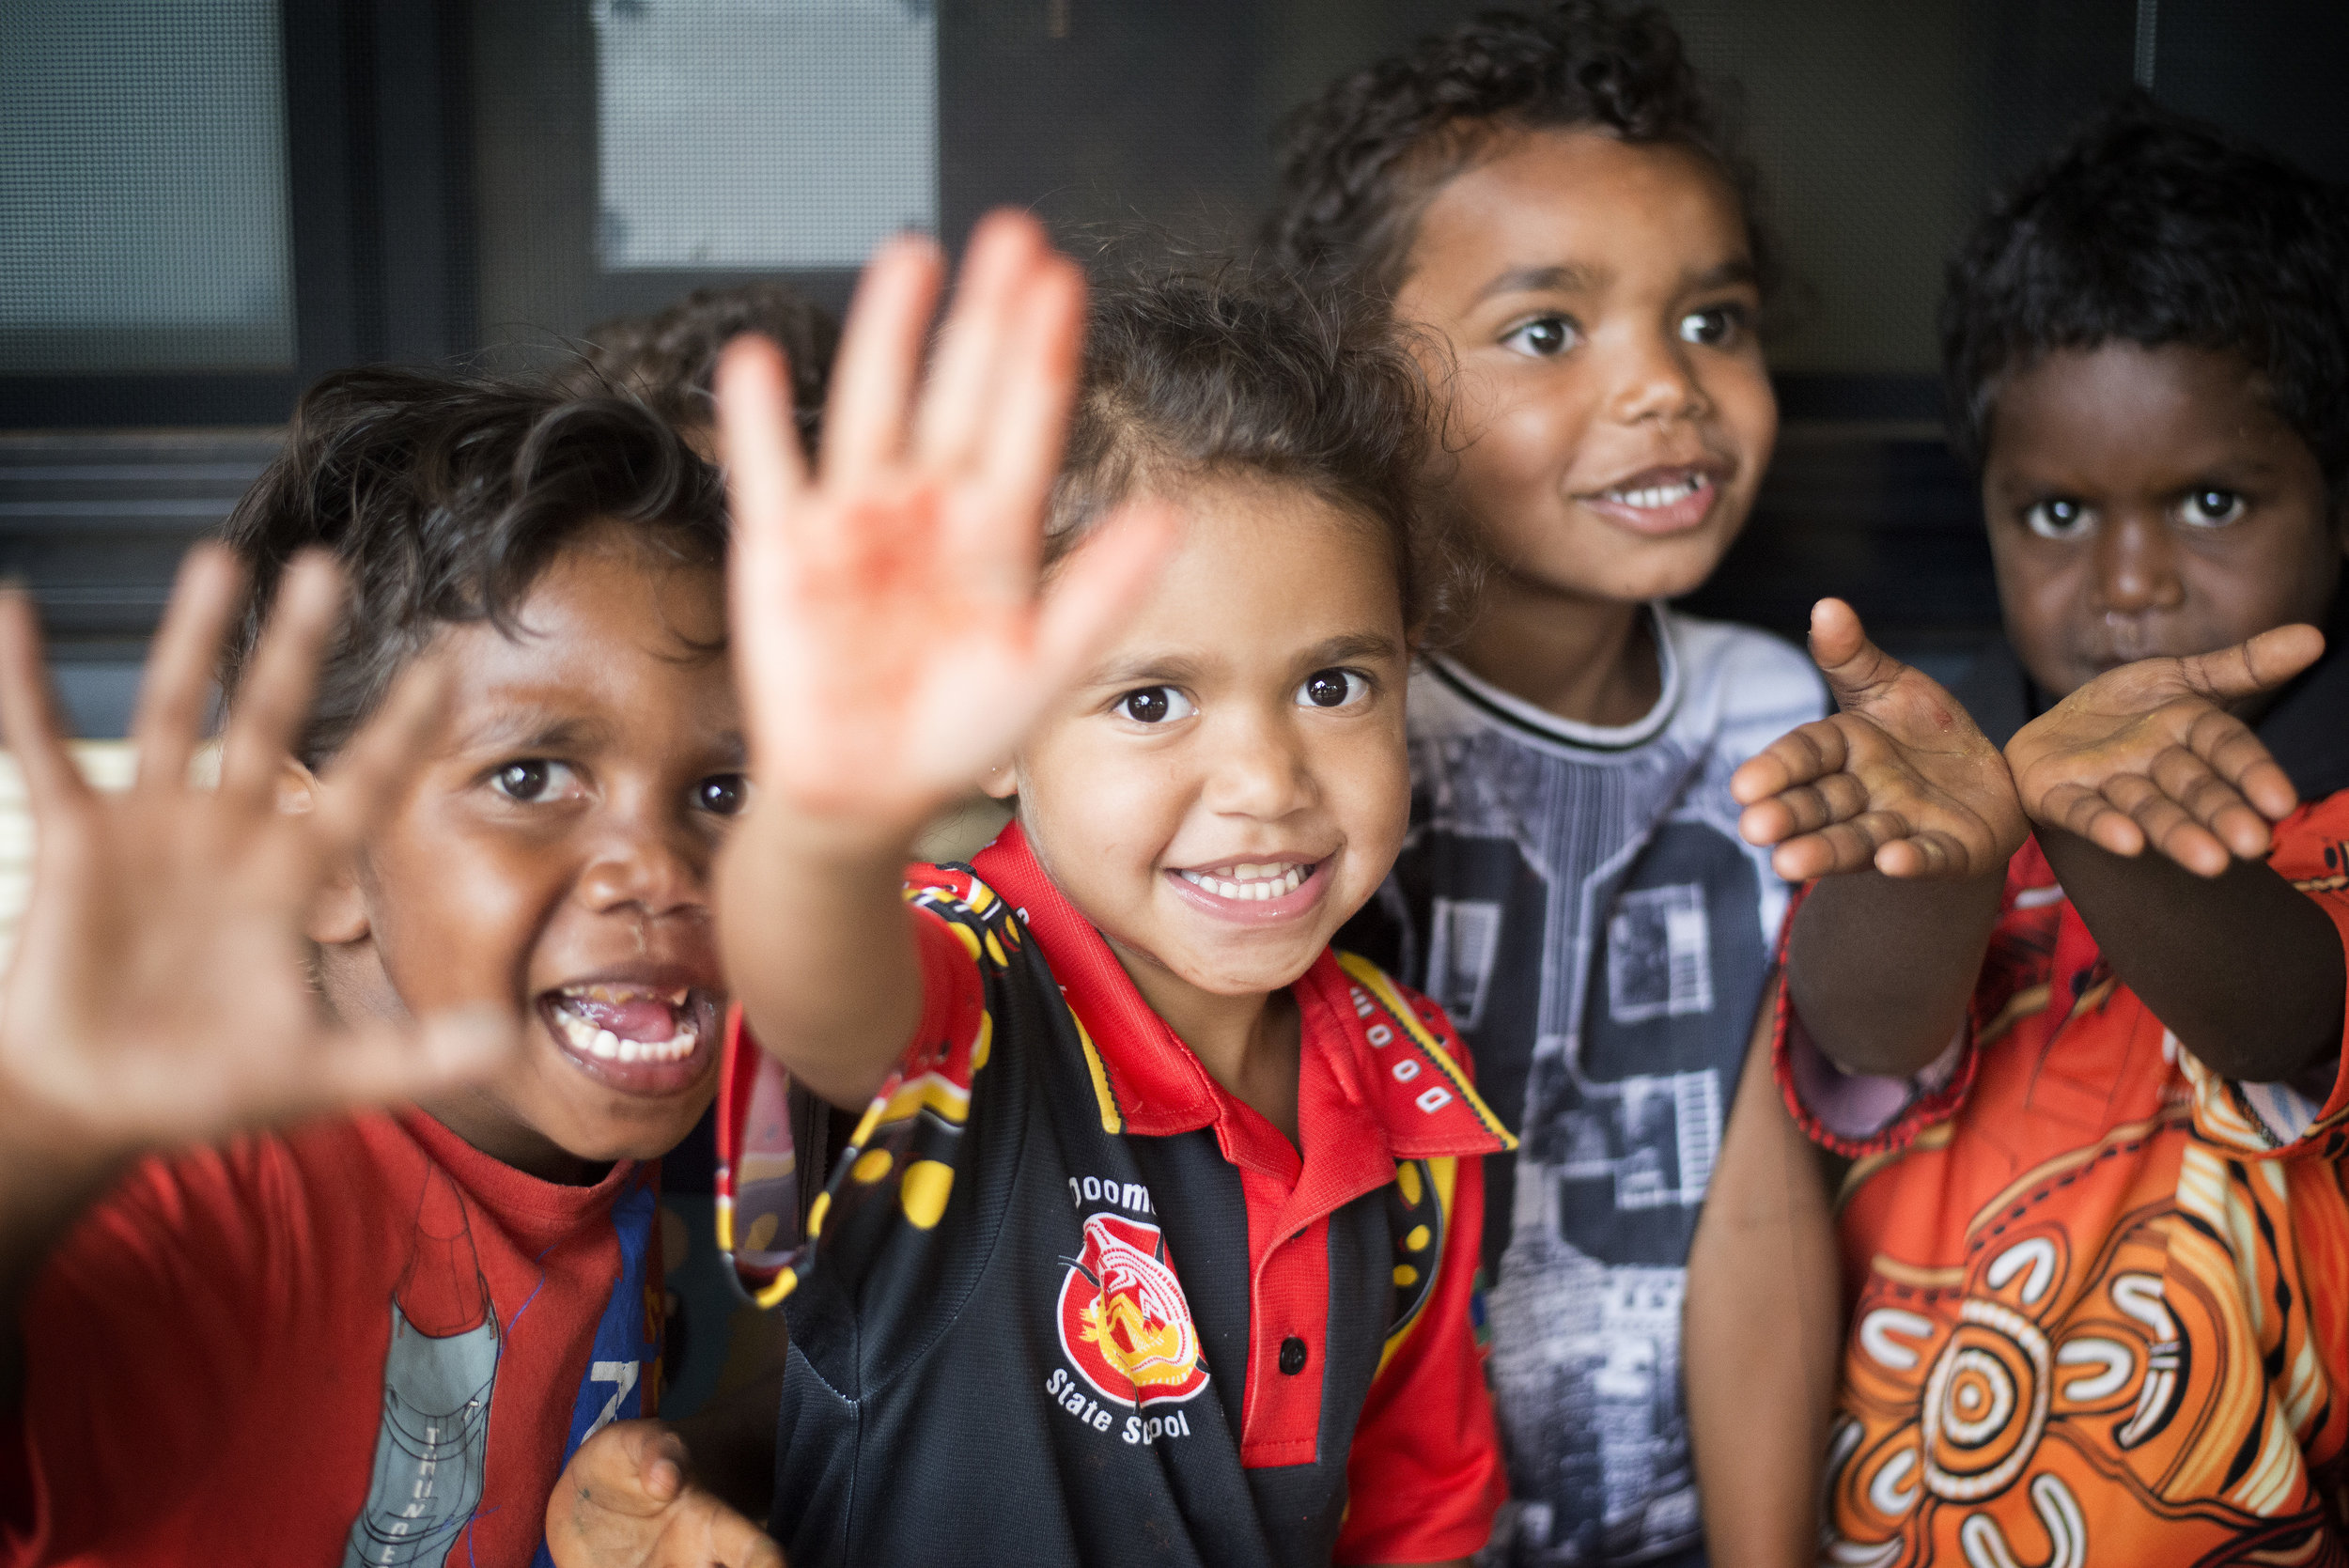 Early Childhood program. Gulf country, Queensland. 2016.